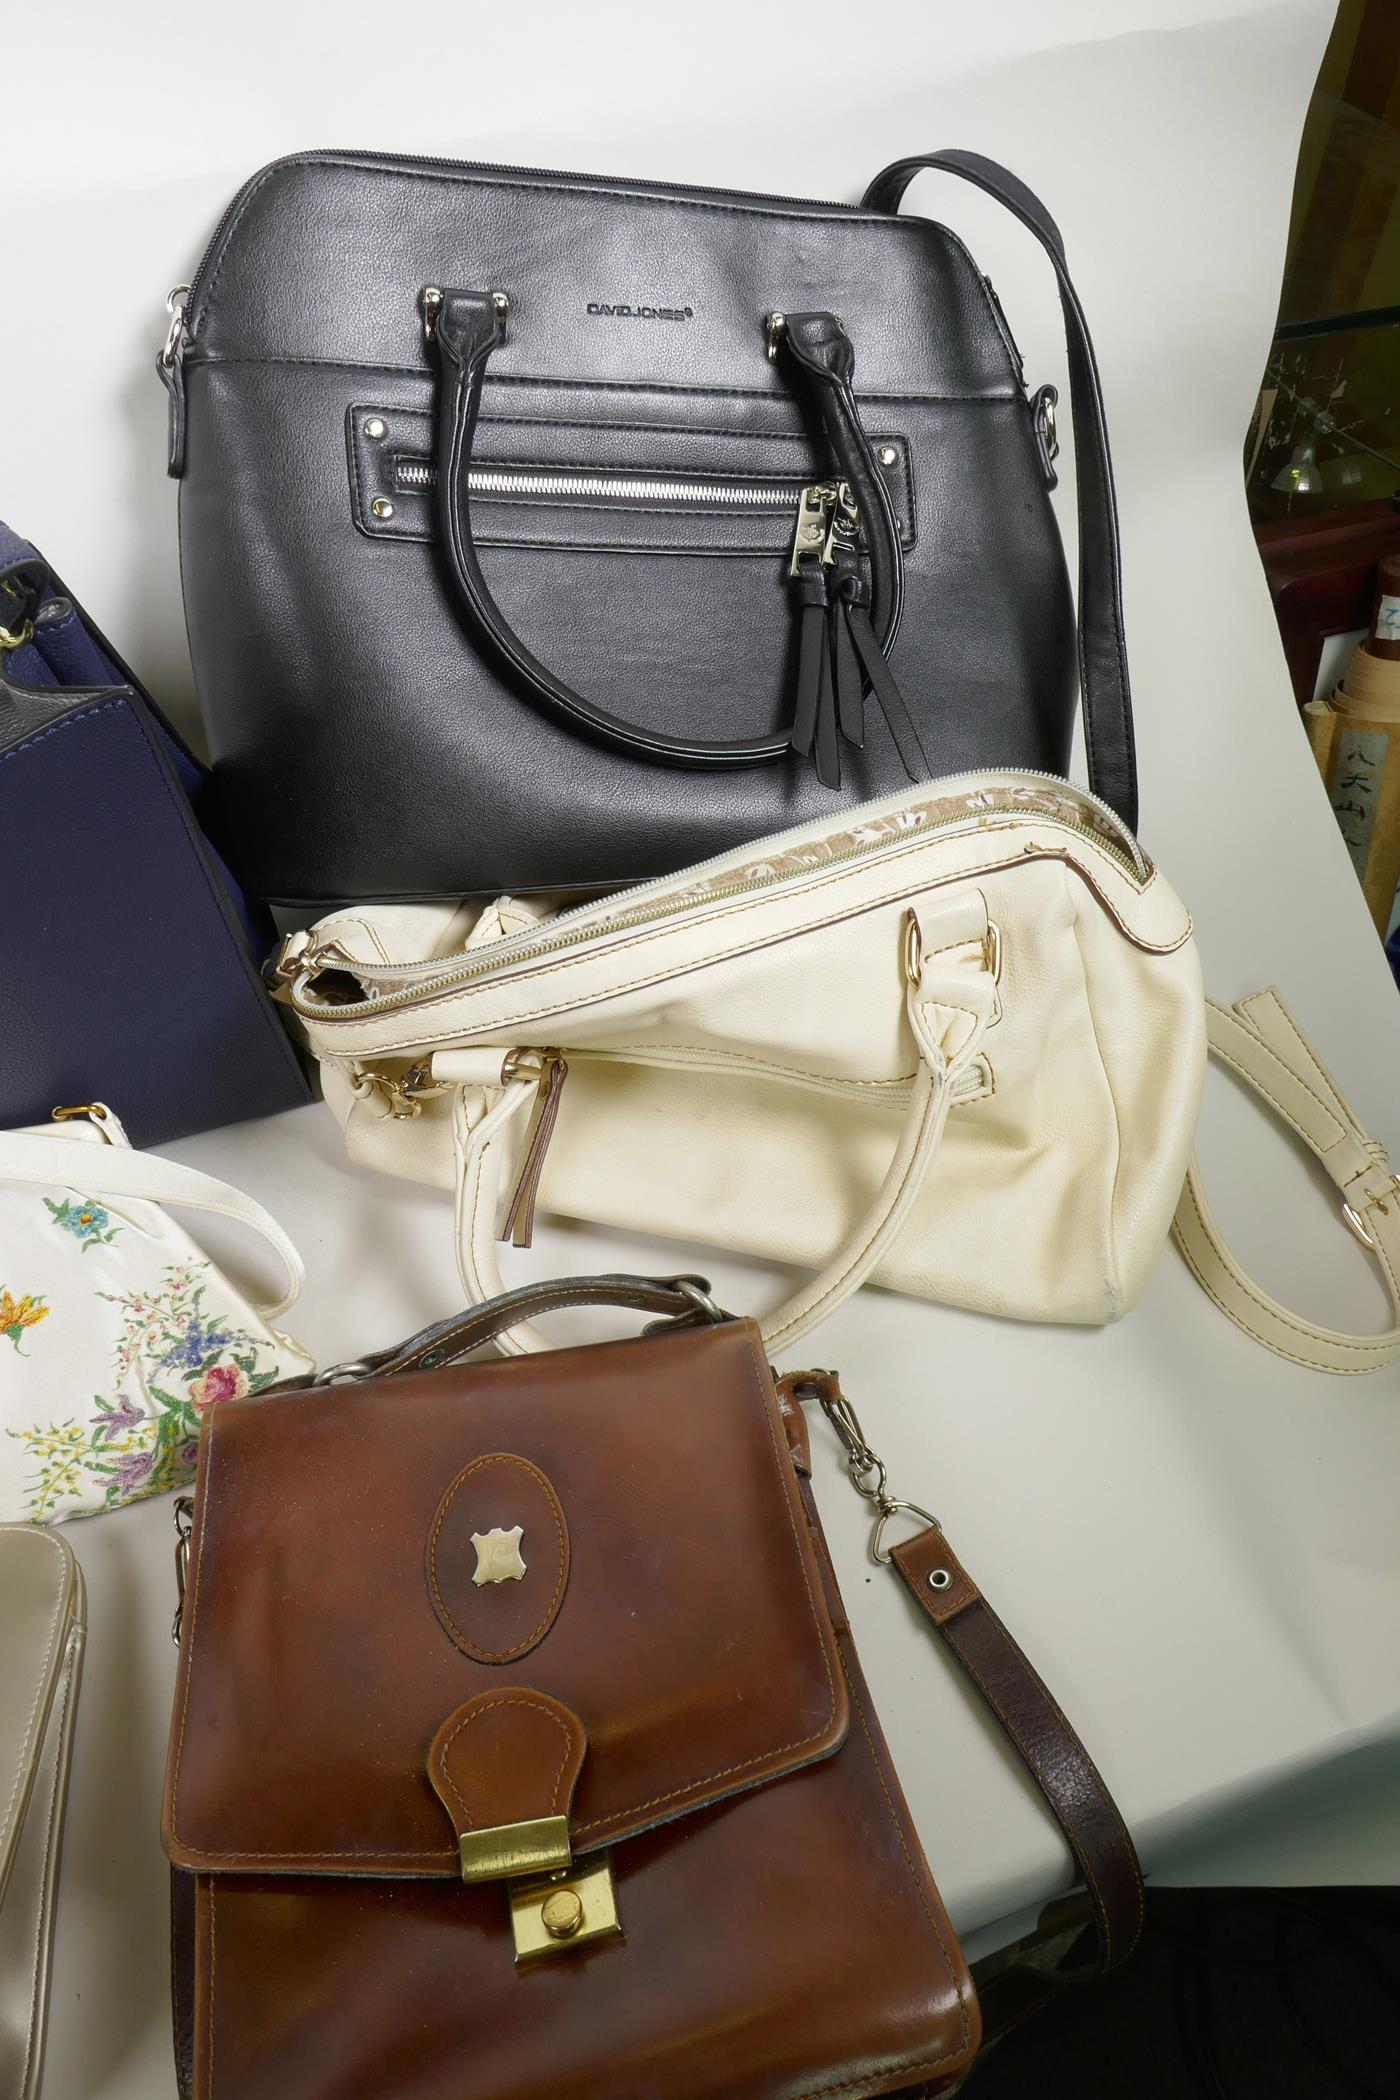 Lot 46 - A collection of vintage handbags including David Jones, Tula etc